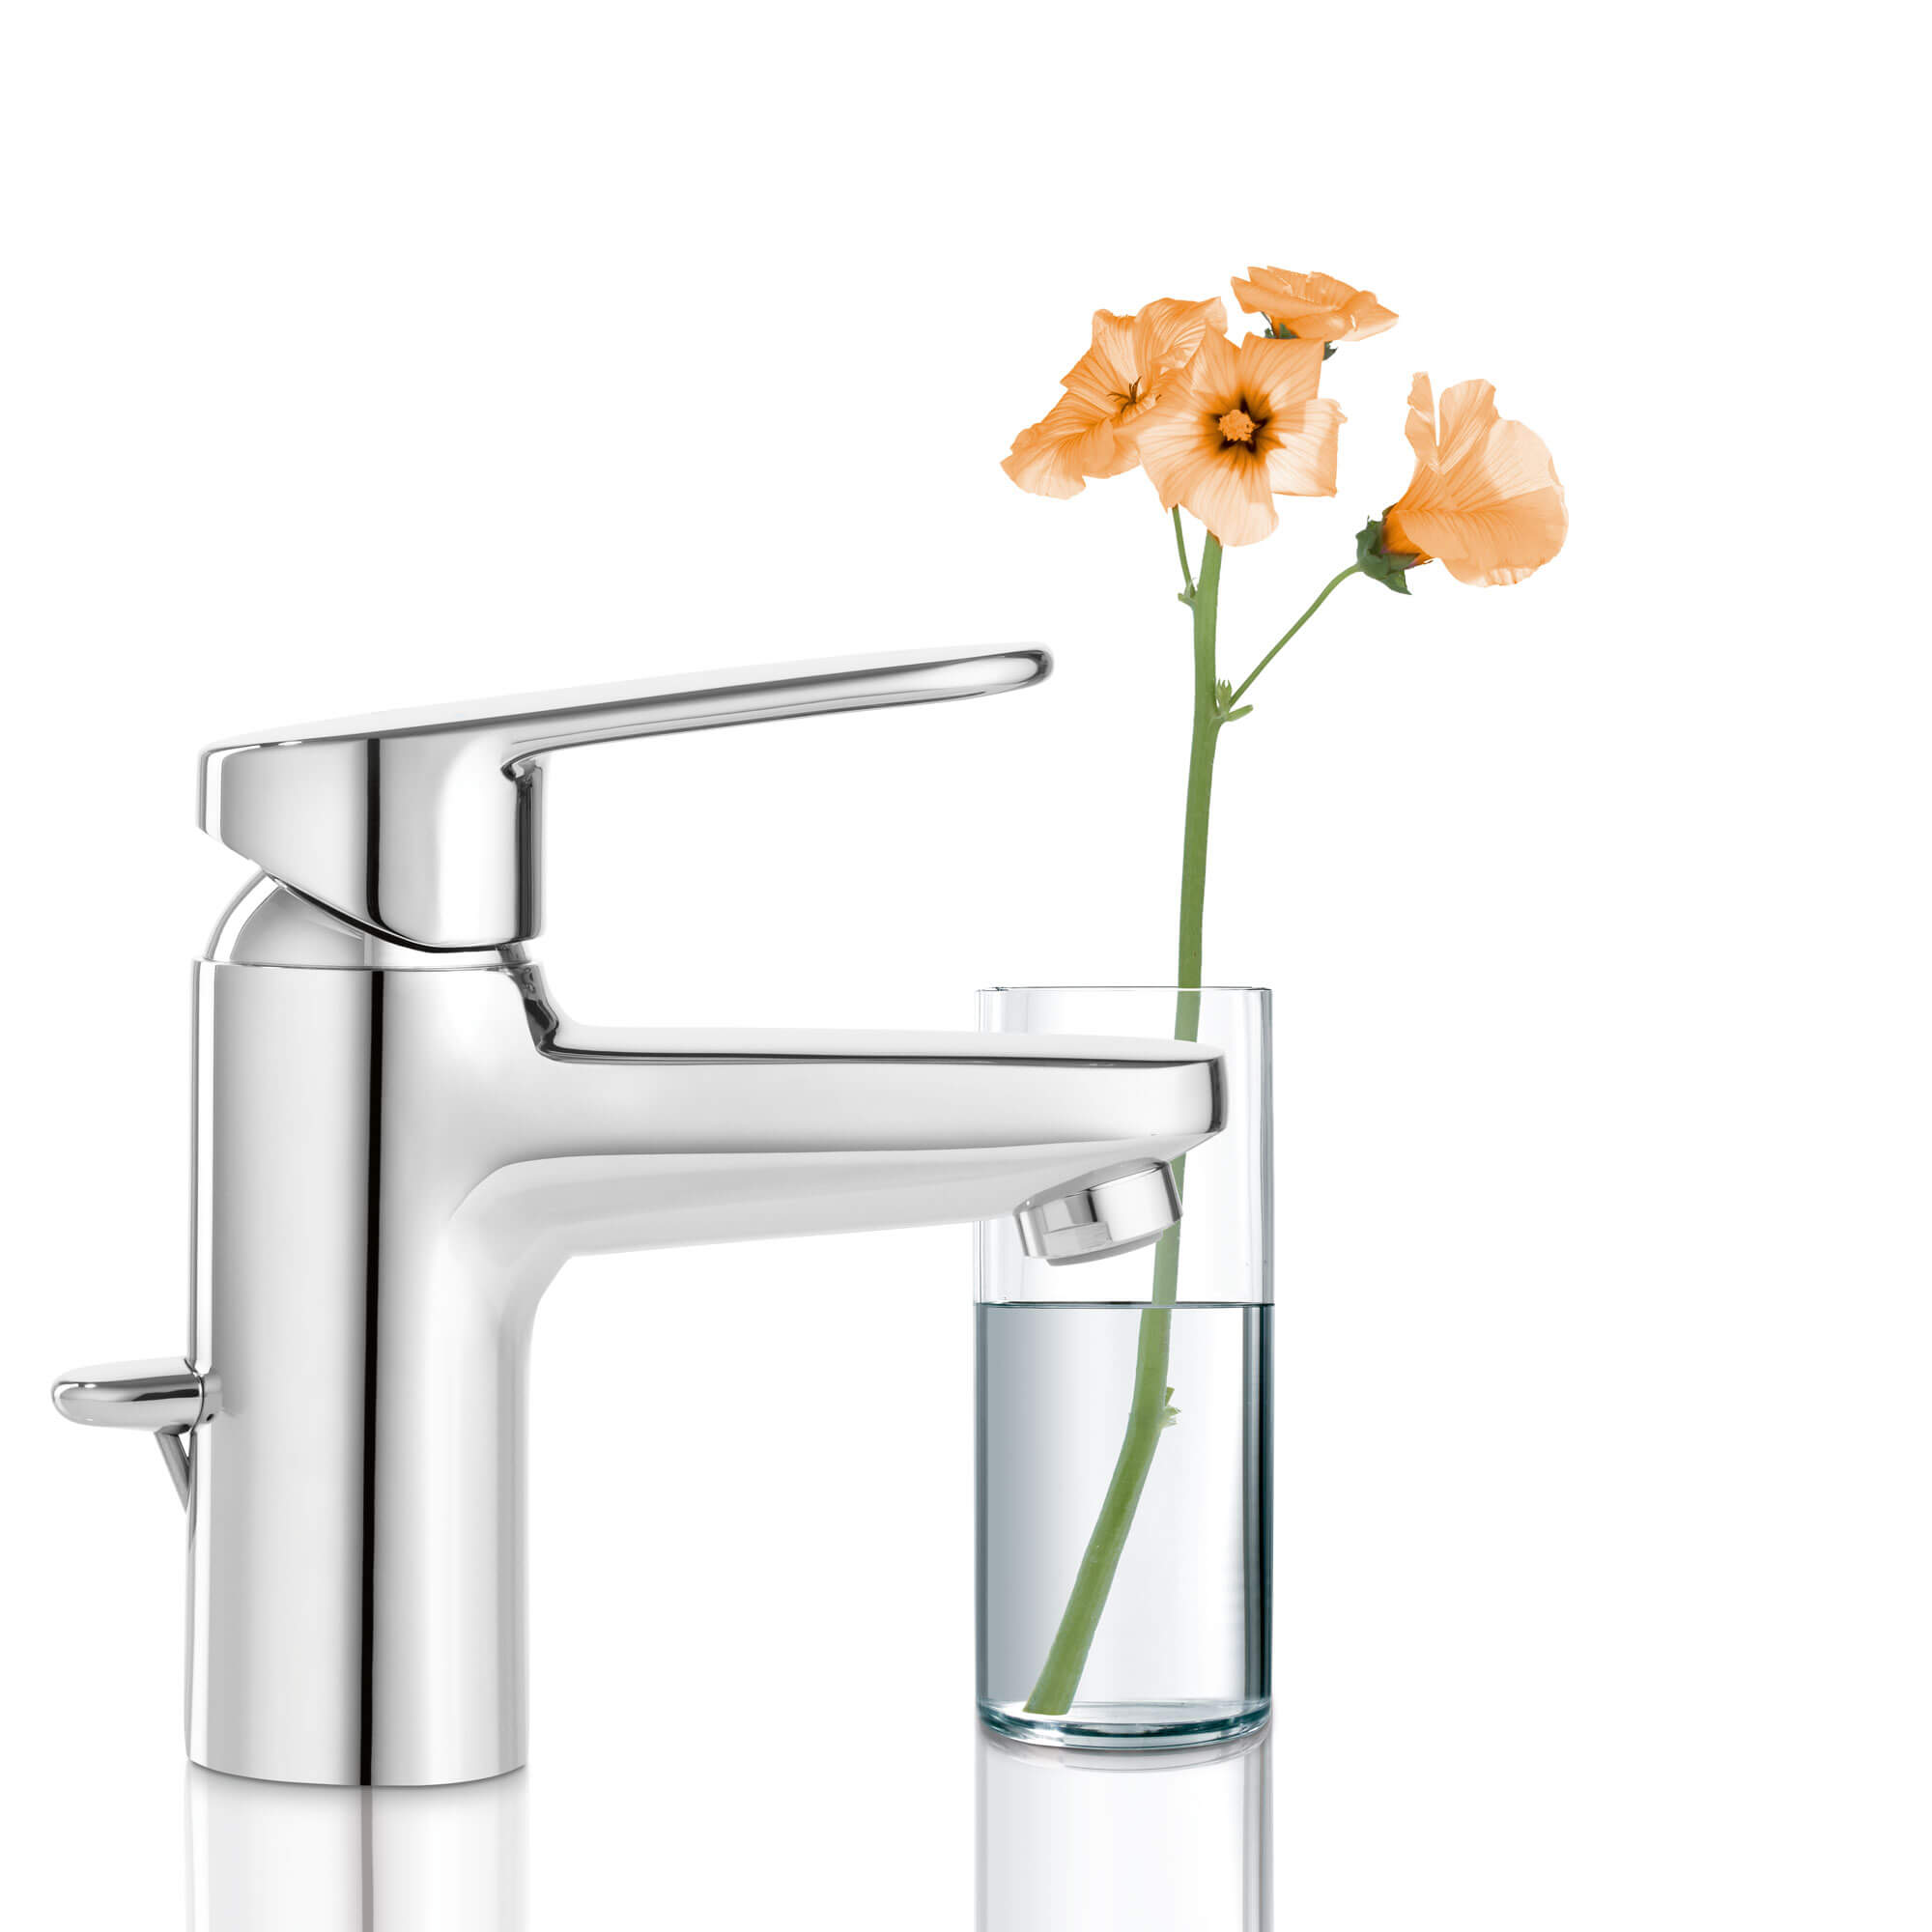 Europlus bathroom faucet next to a glass filled with flowers.